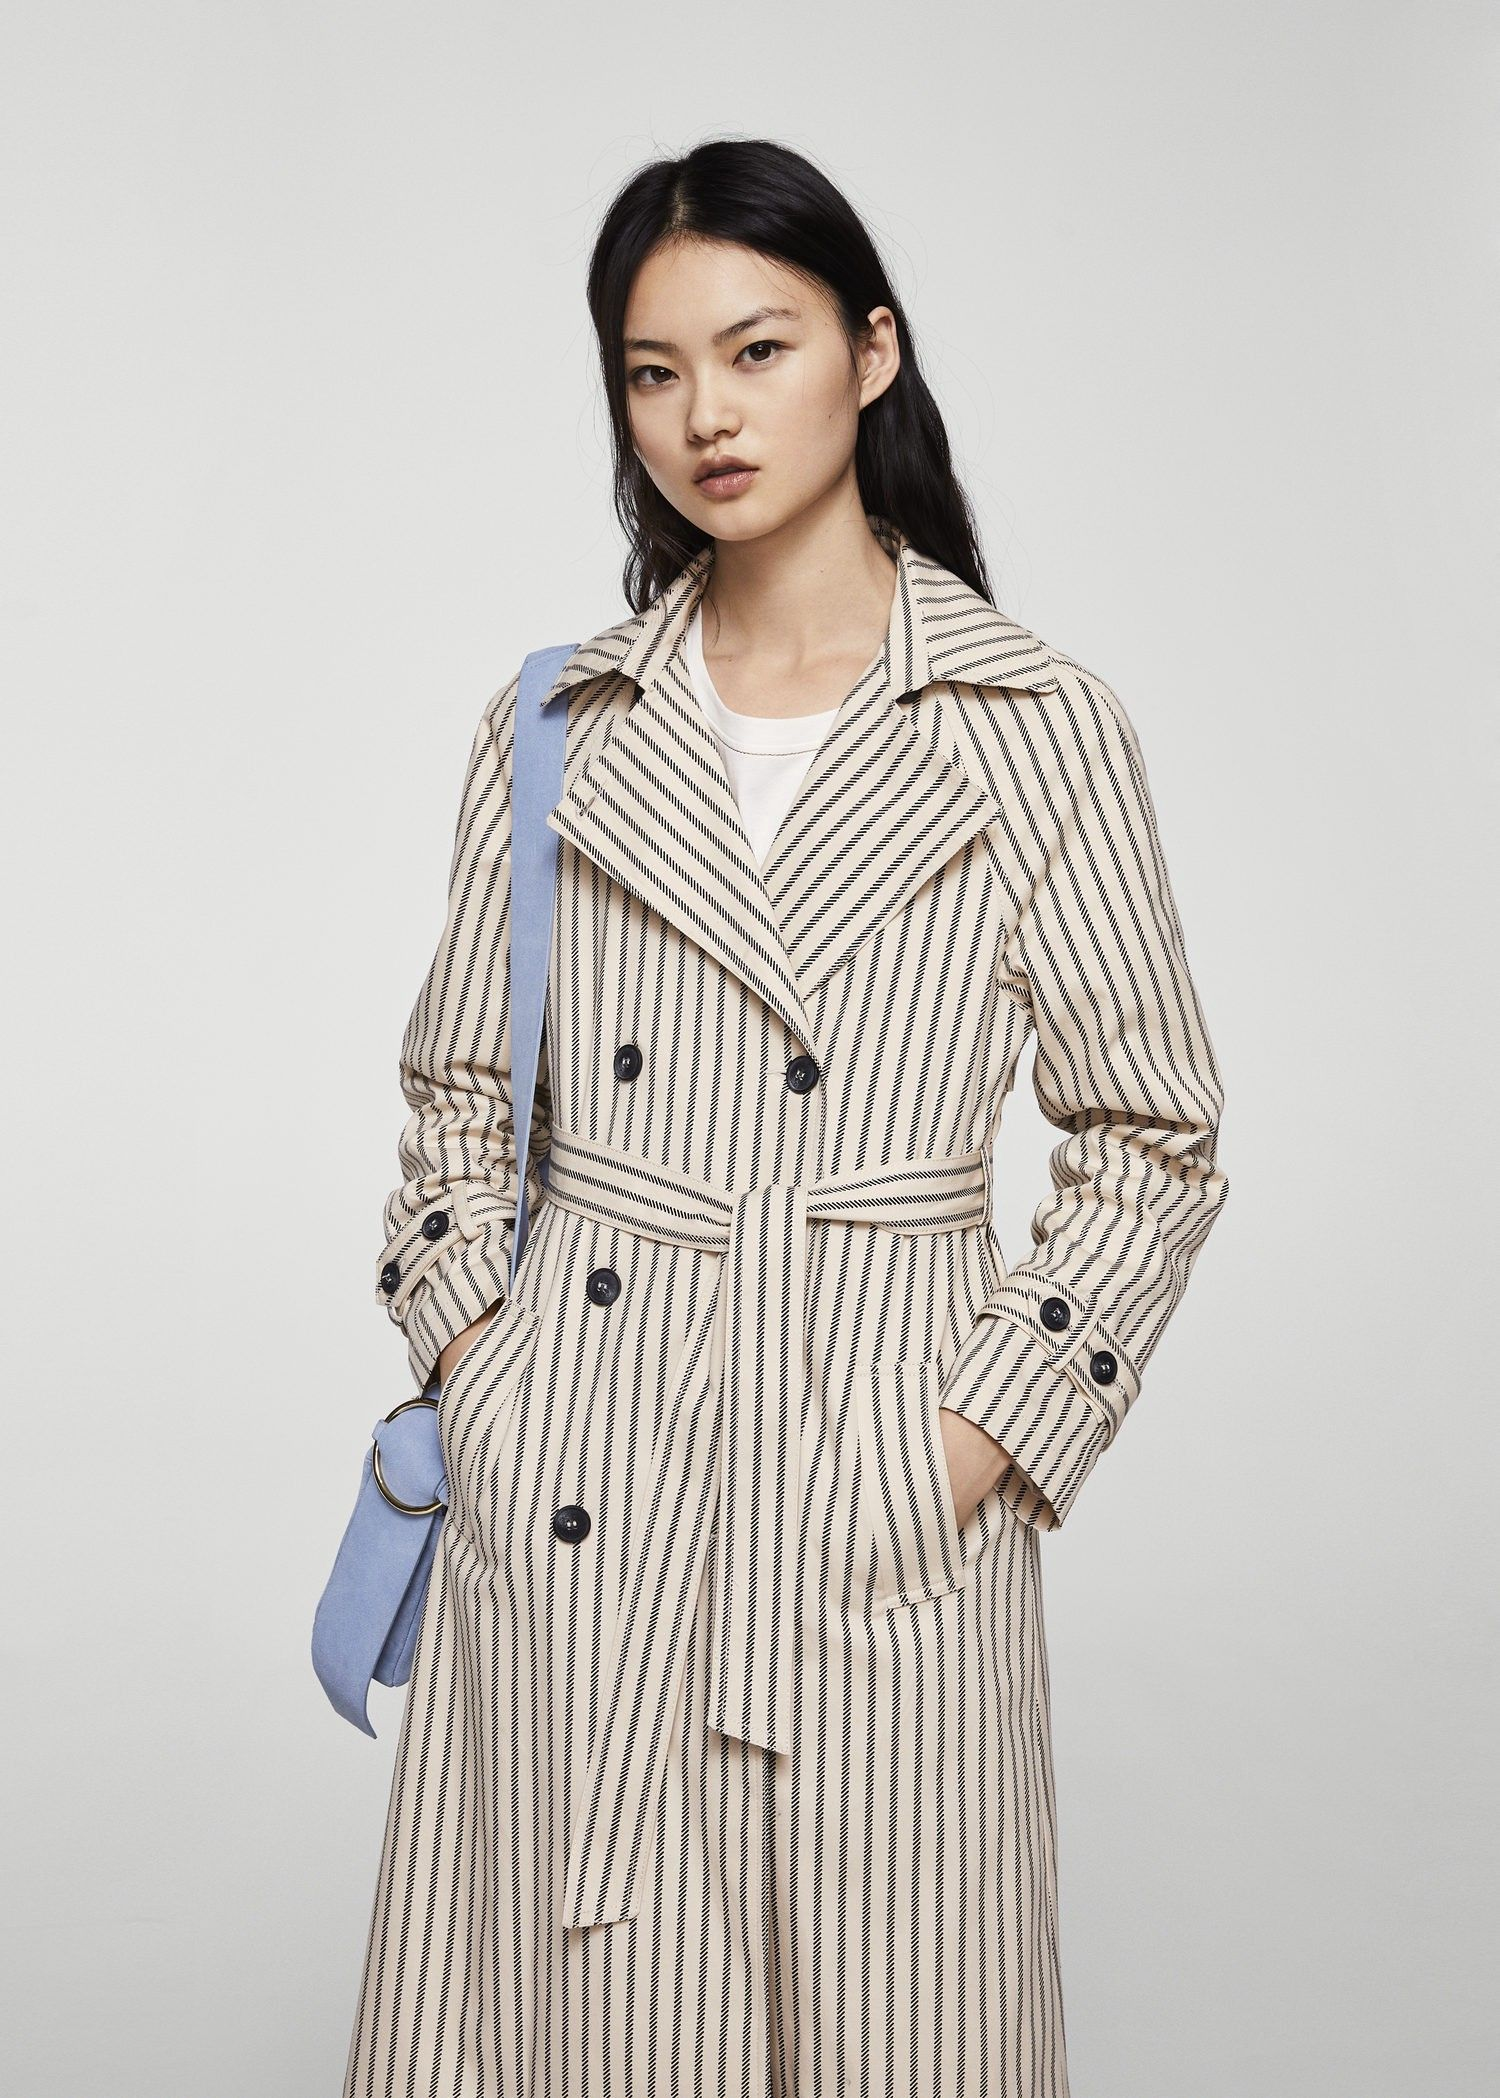 366babd58b699 Mango Striped Belt Trench - Women   M   Products in 2018   Pinterest ...